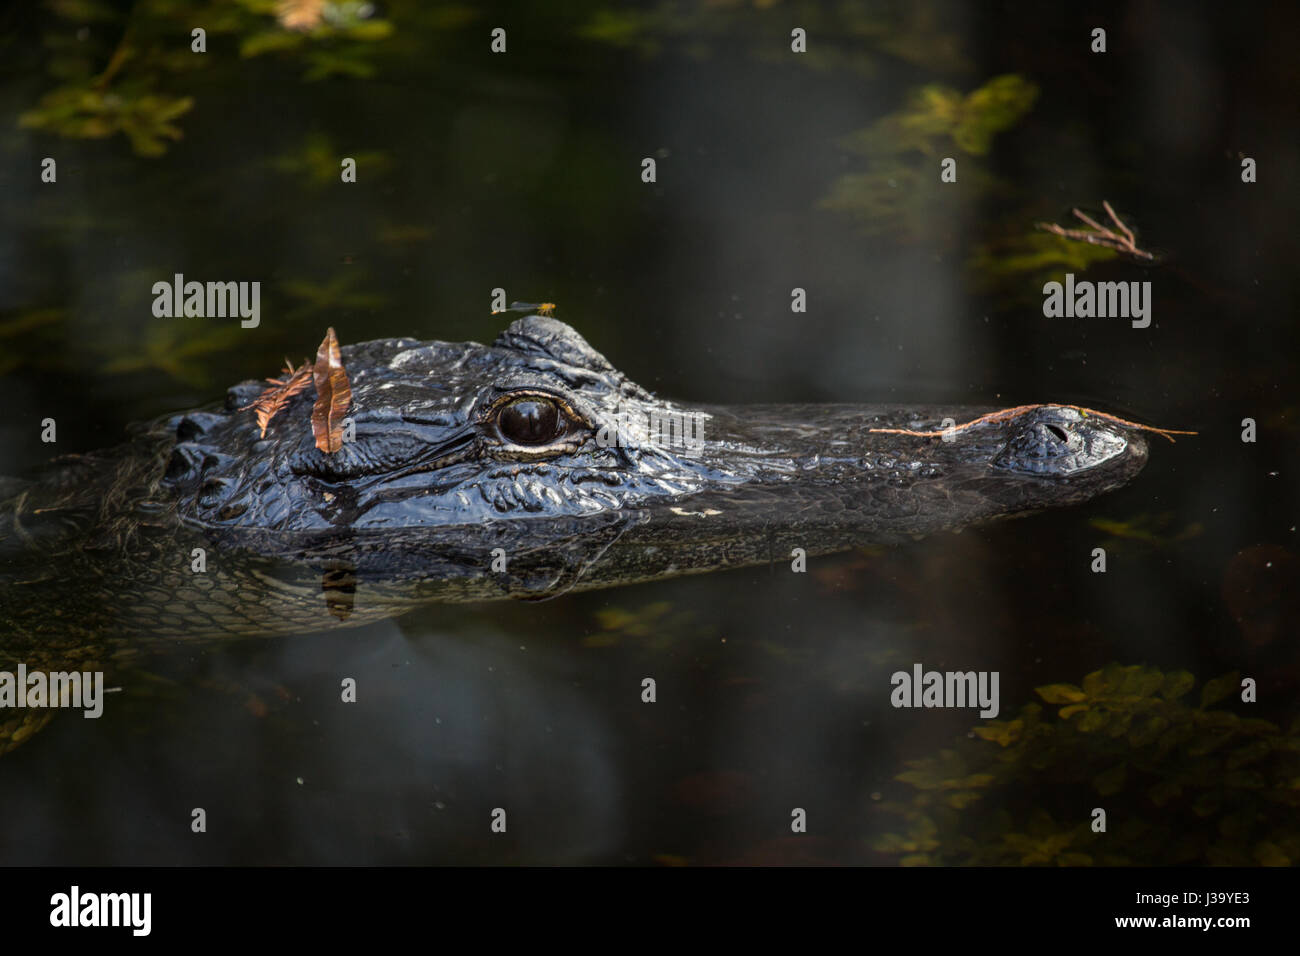 Alligator swiming in water in  the Florida Everglades - Stock Image